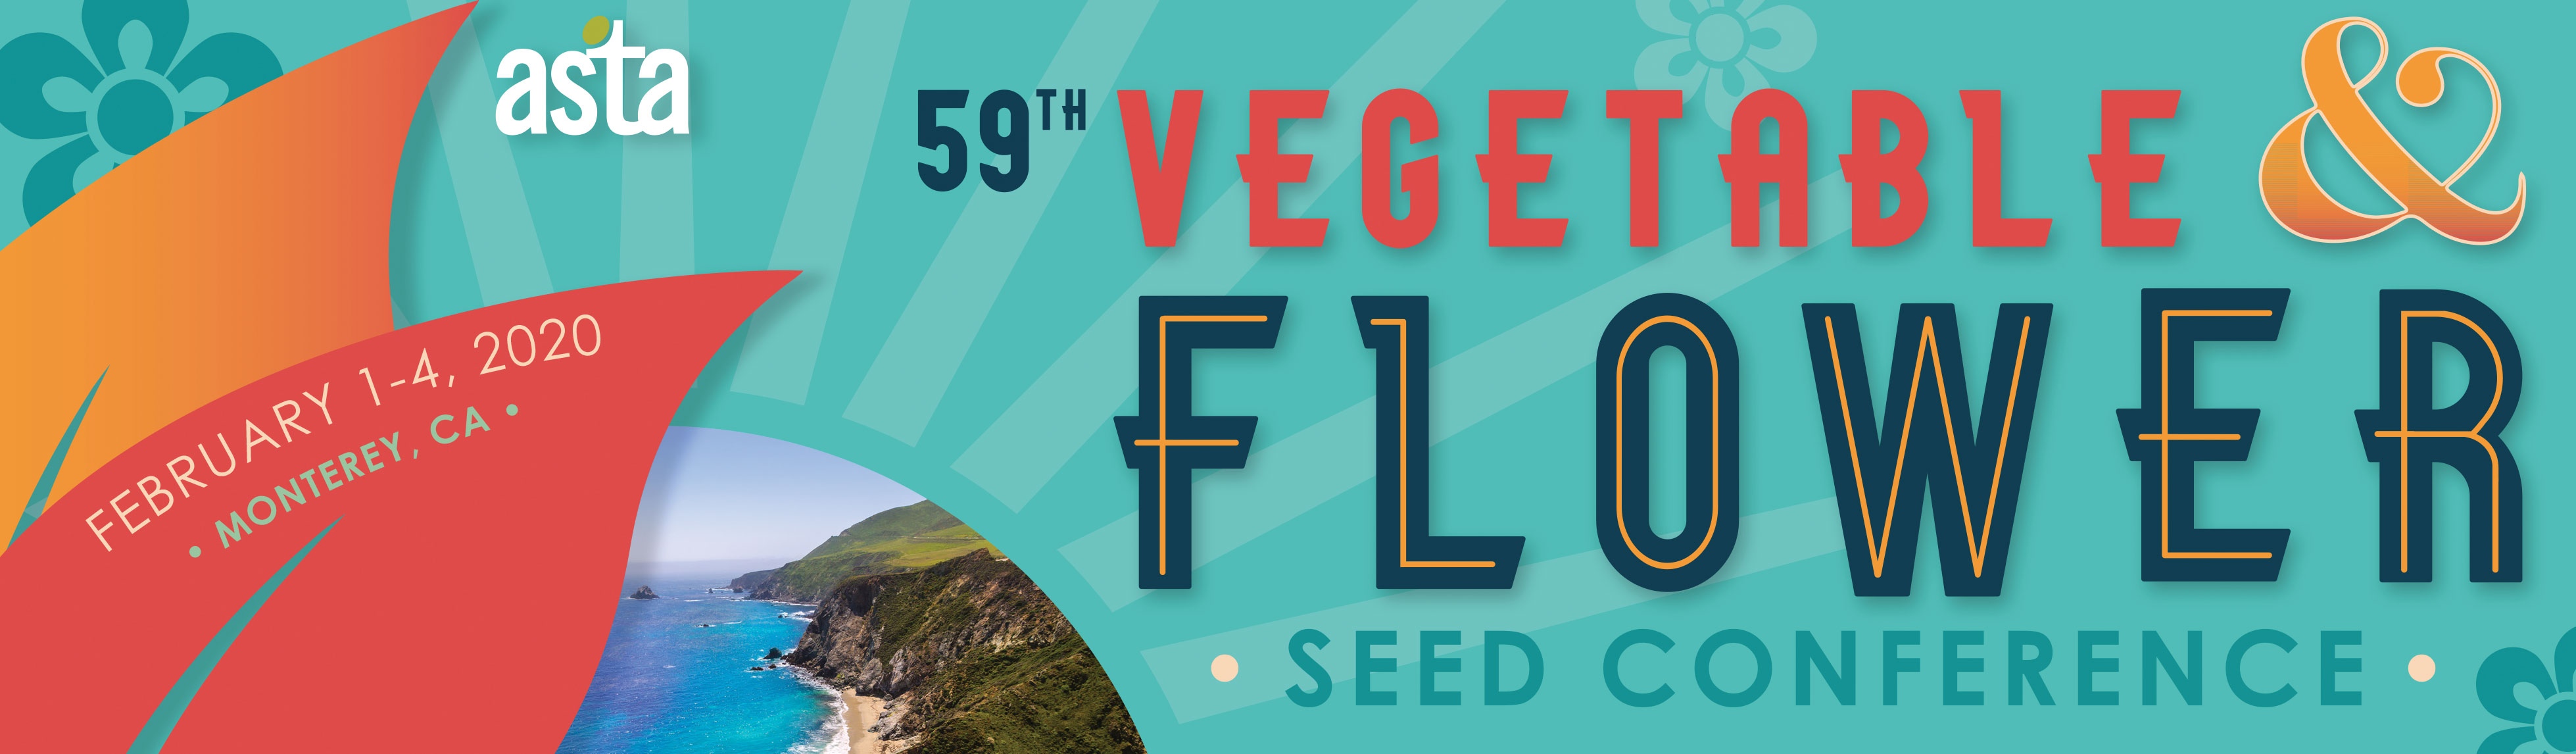 Vegetable & Flower Seed Conference